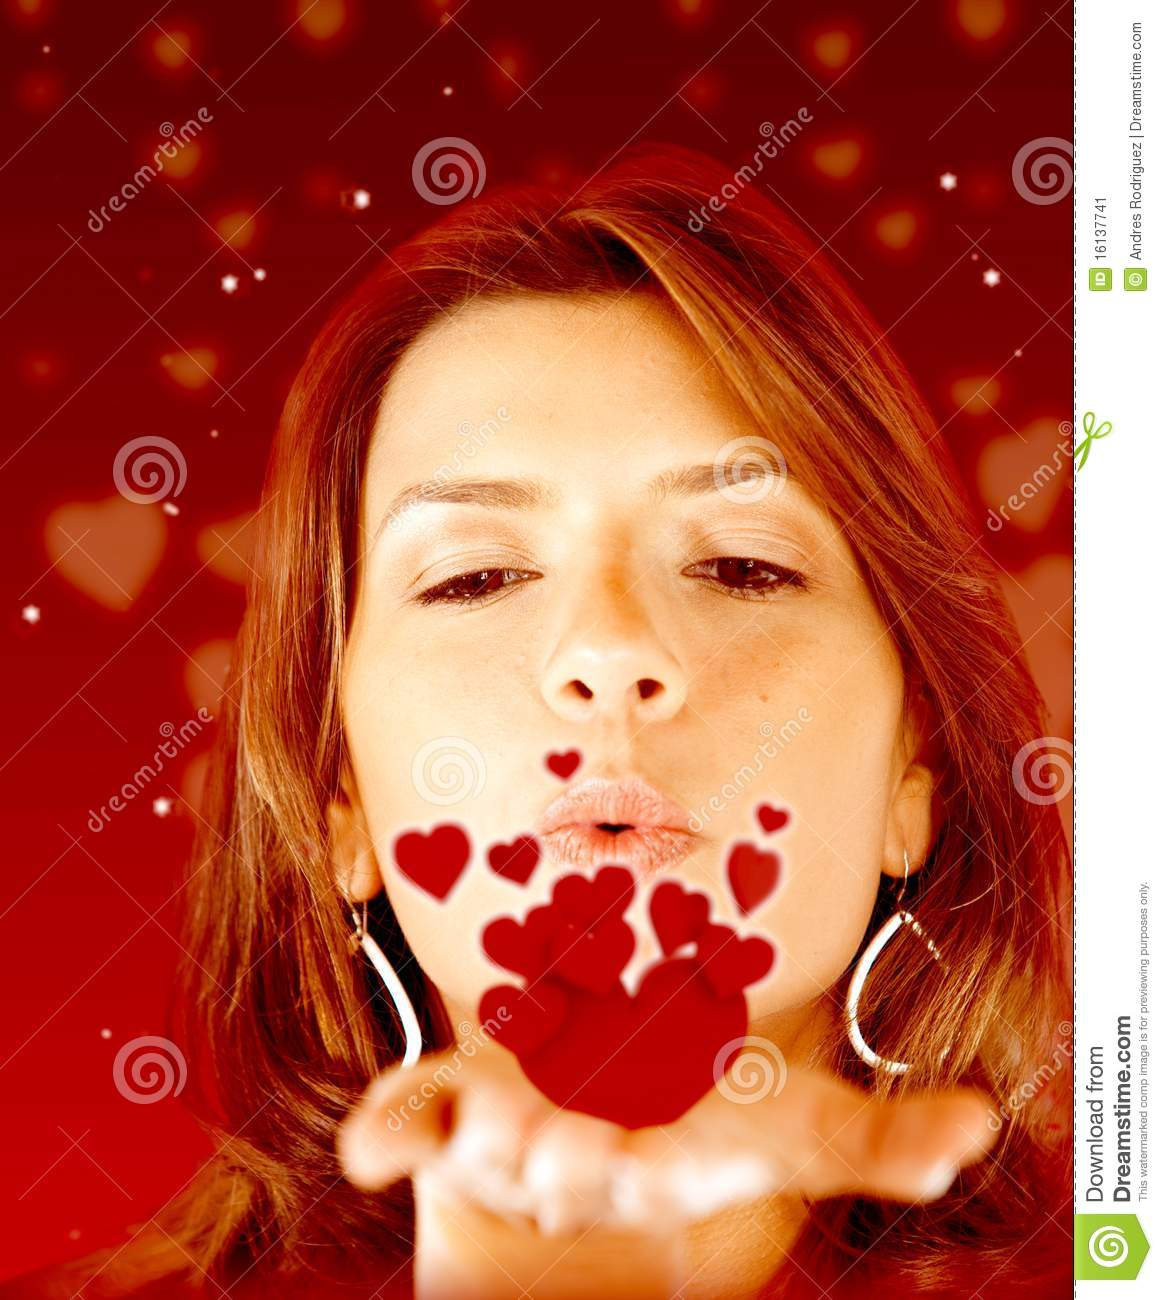 Woman in love stock image. Image of affection, beautiful ...